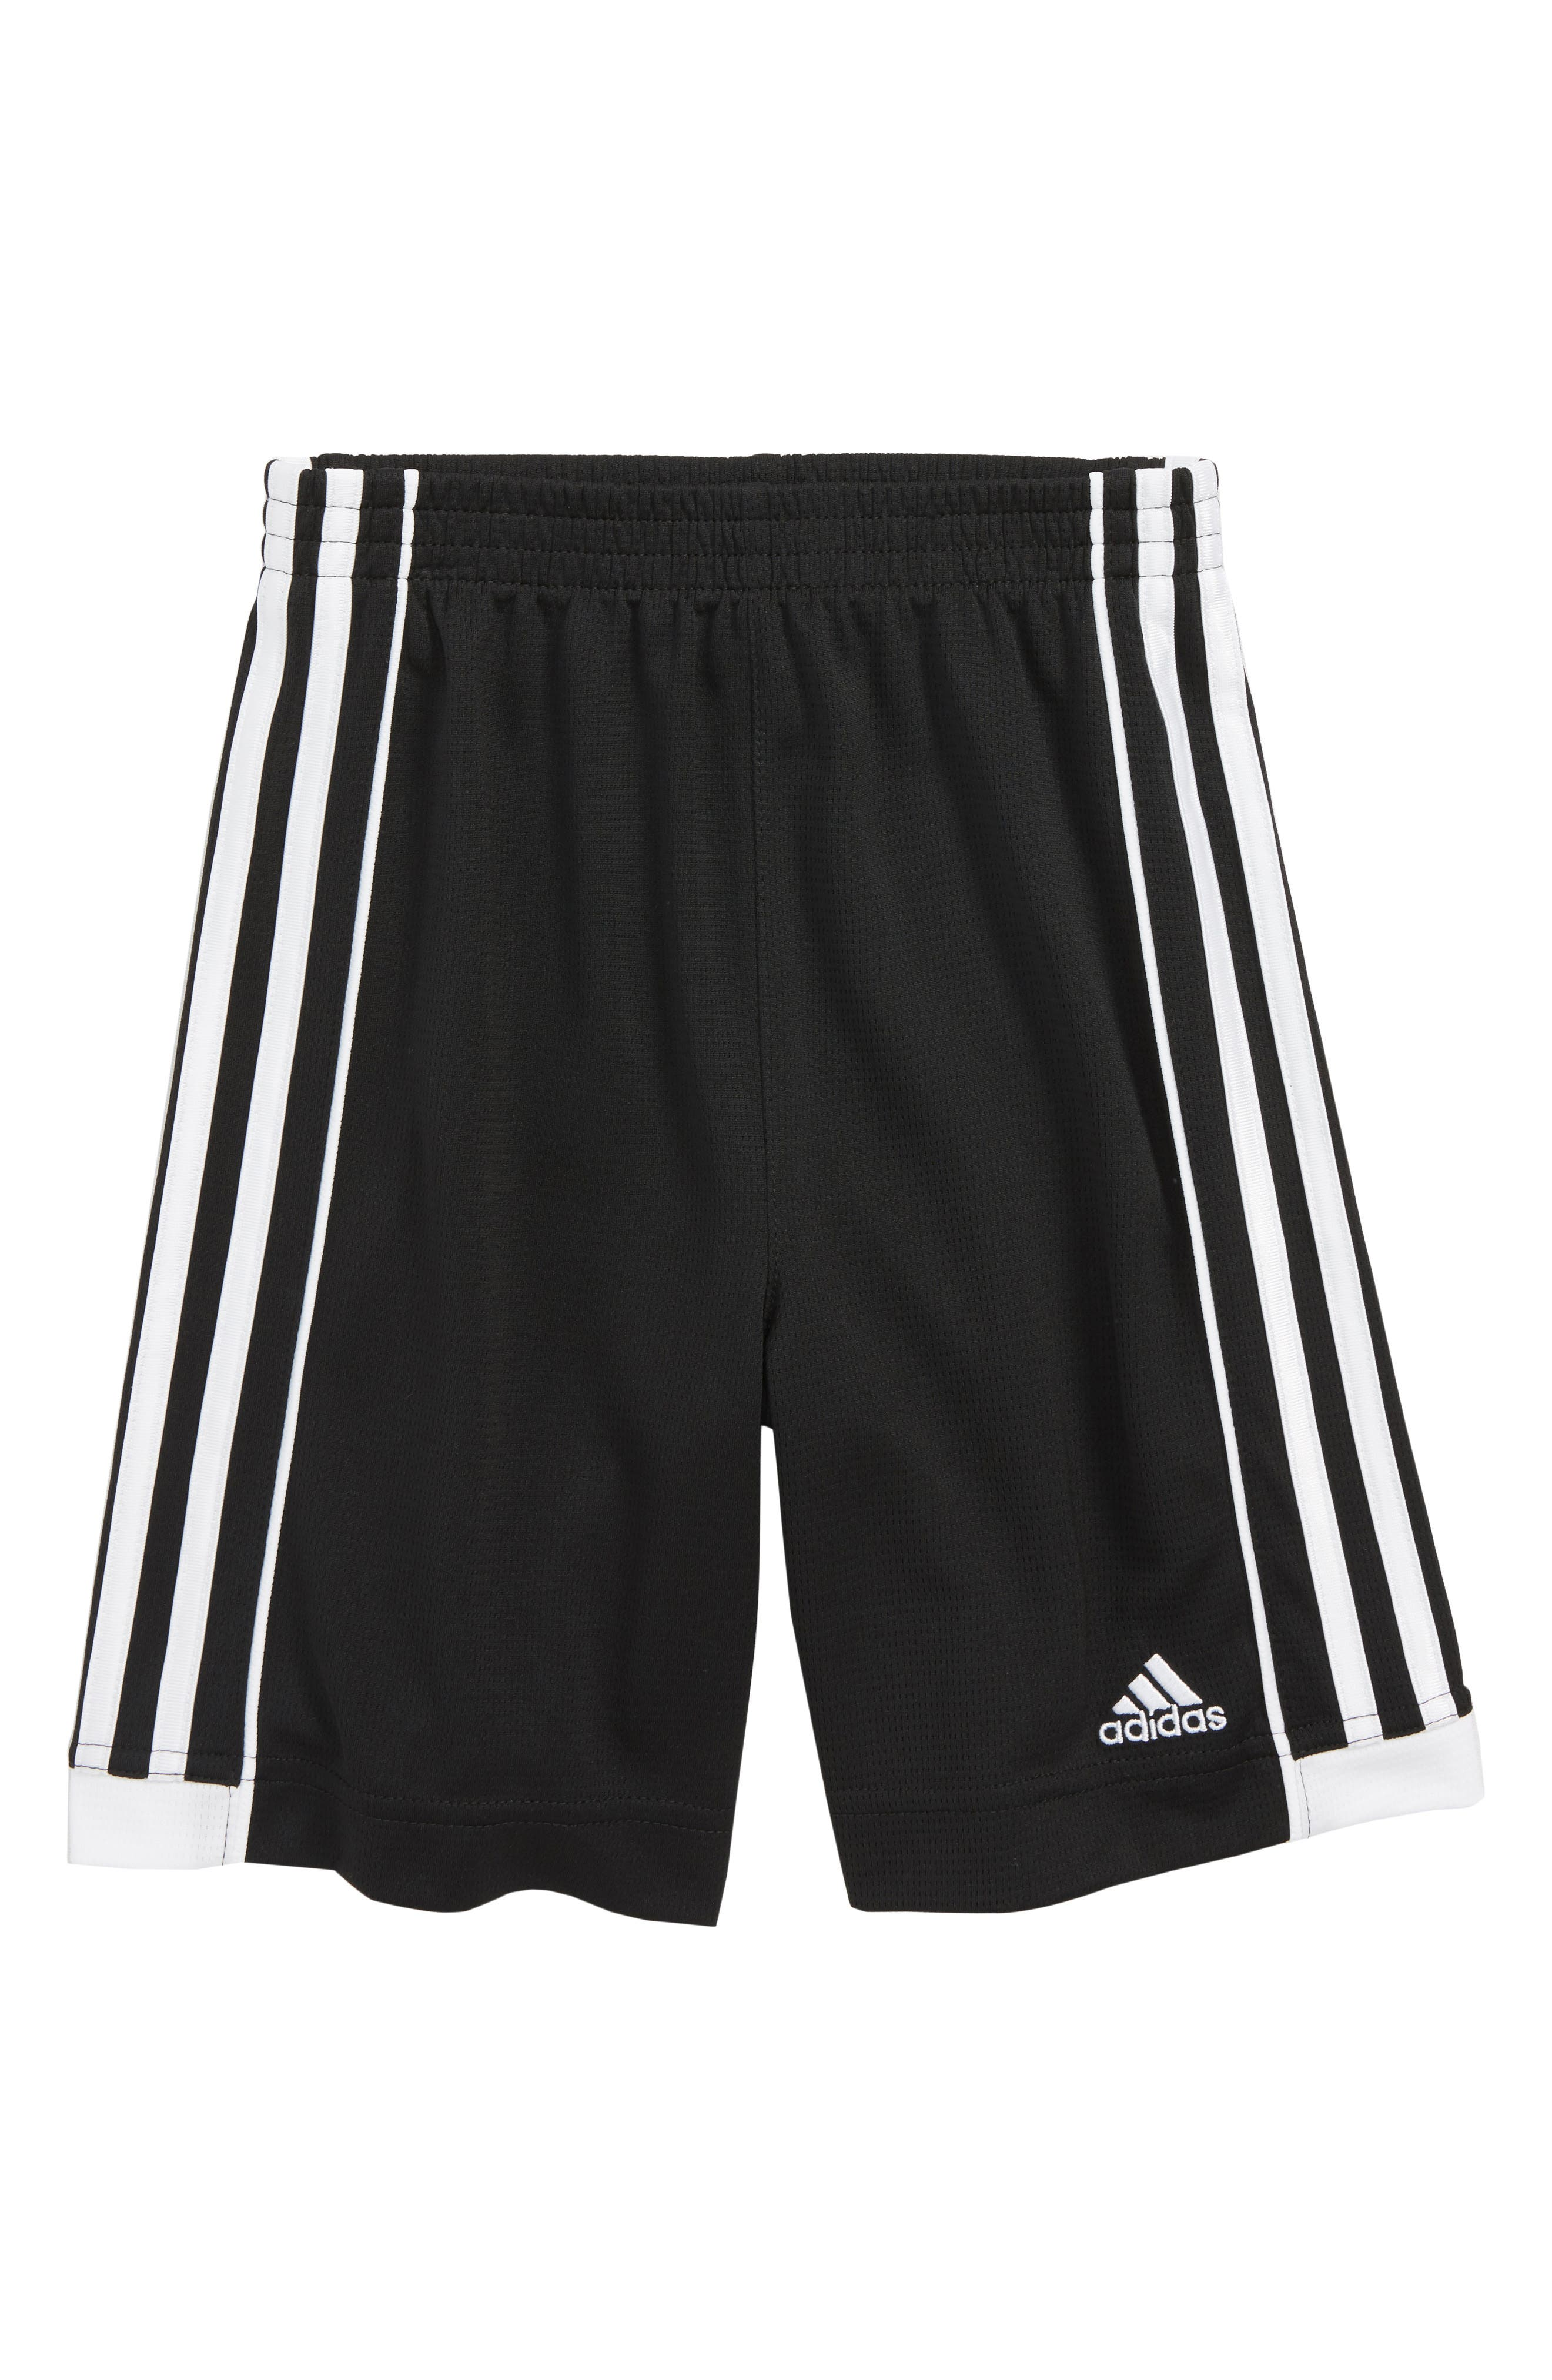 Speed 18 Shorts,                         Main,                         color, BLACK